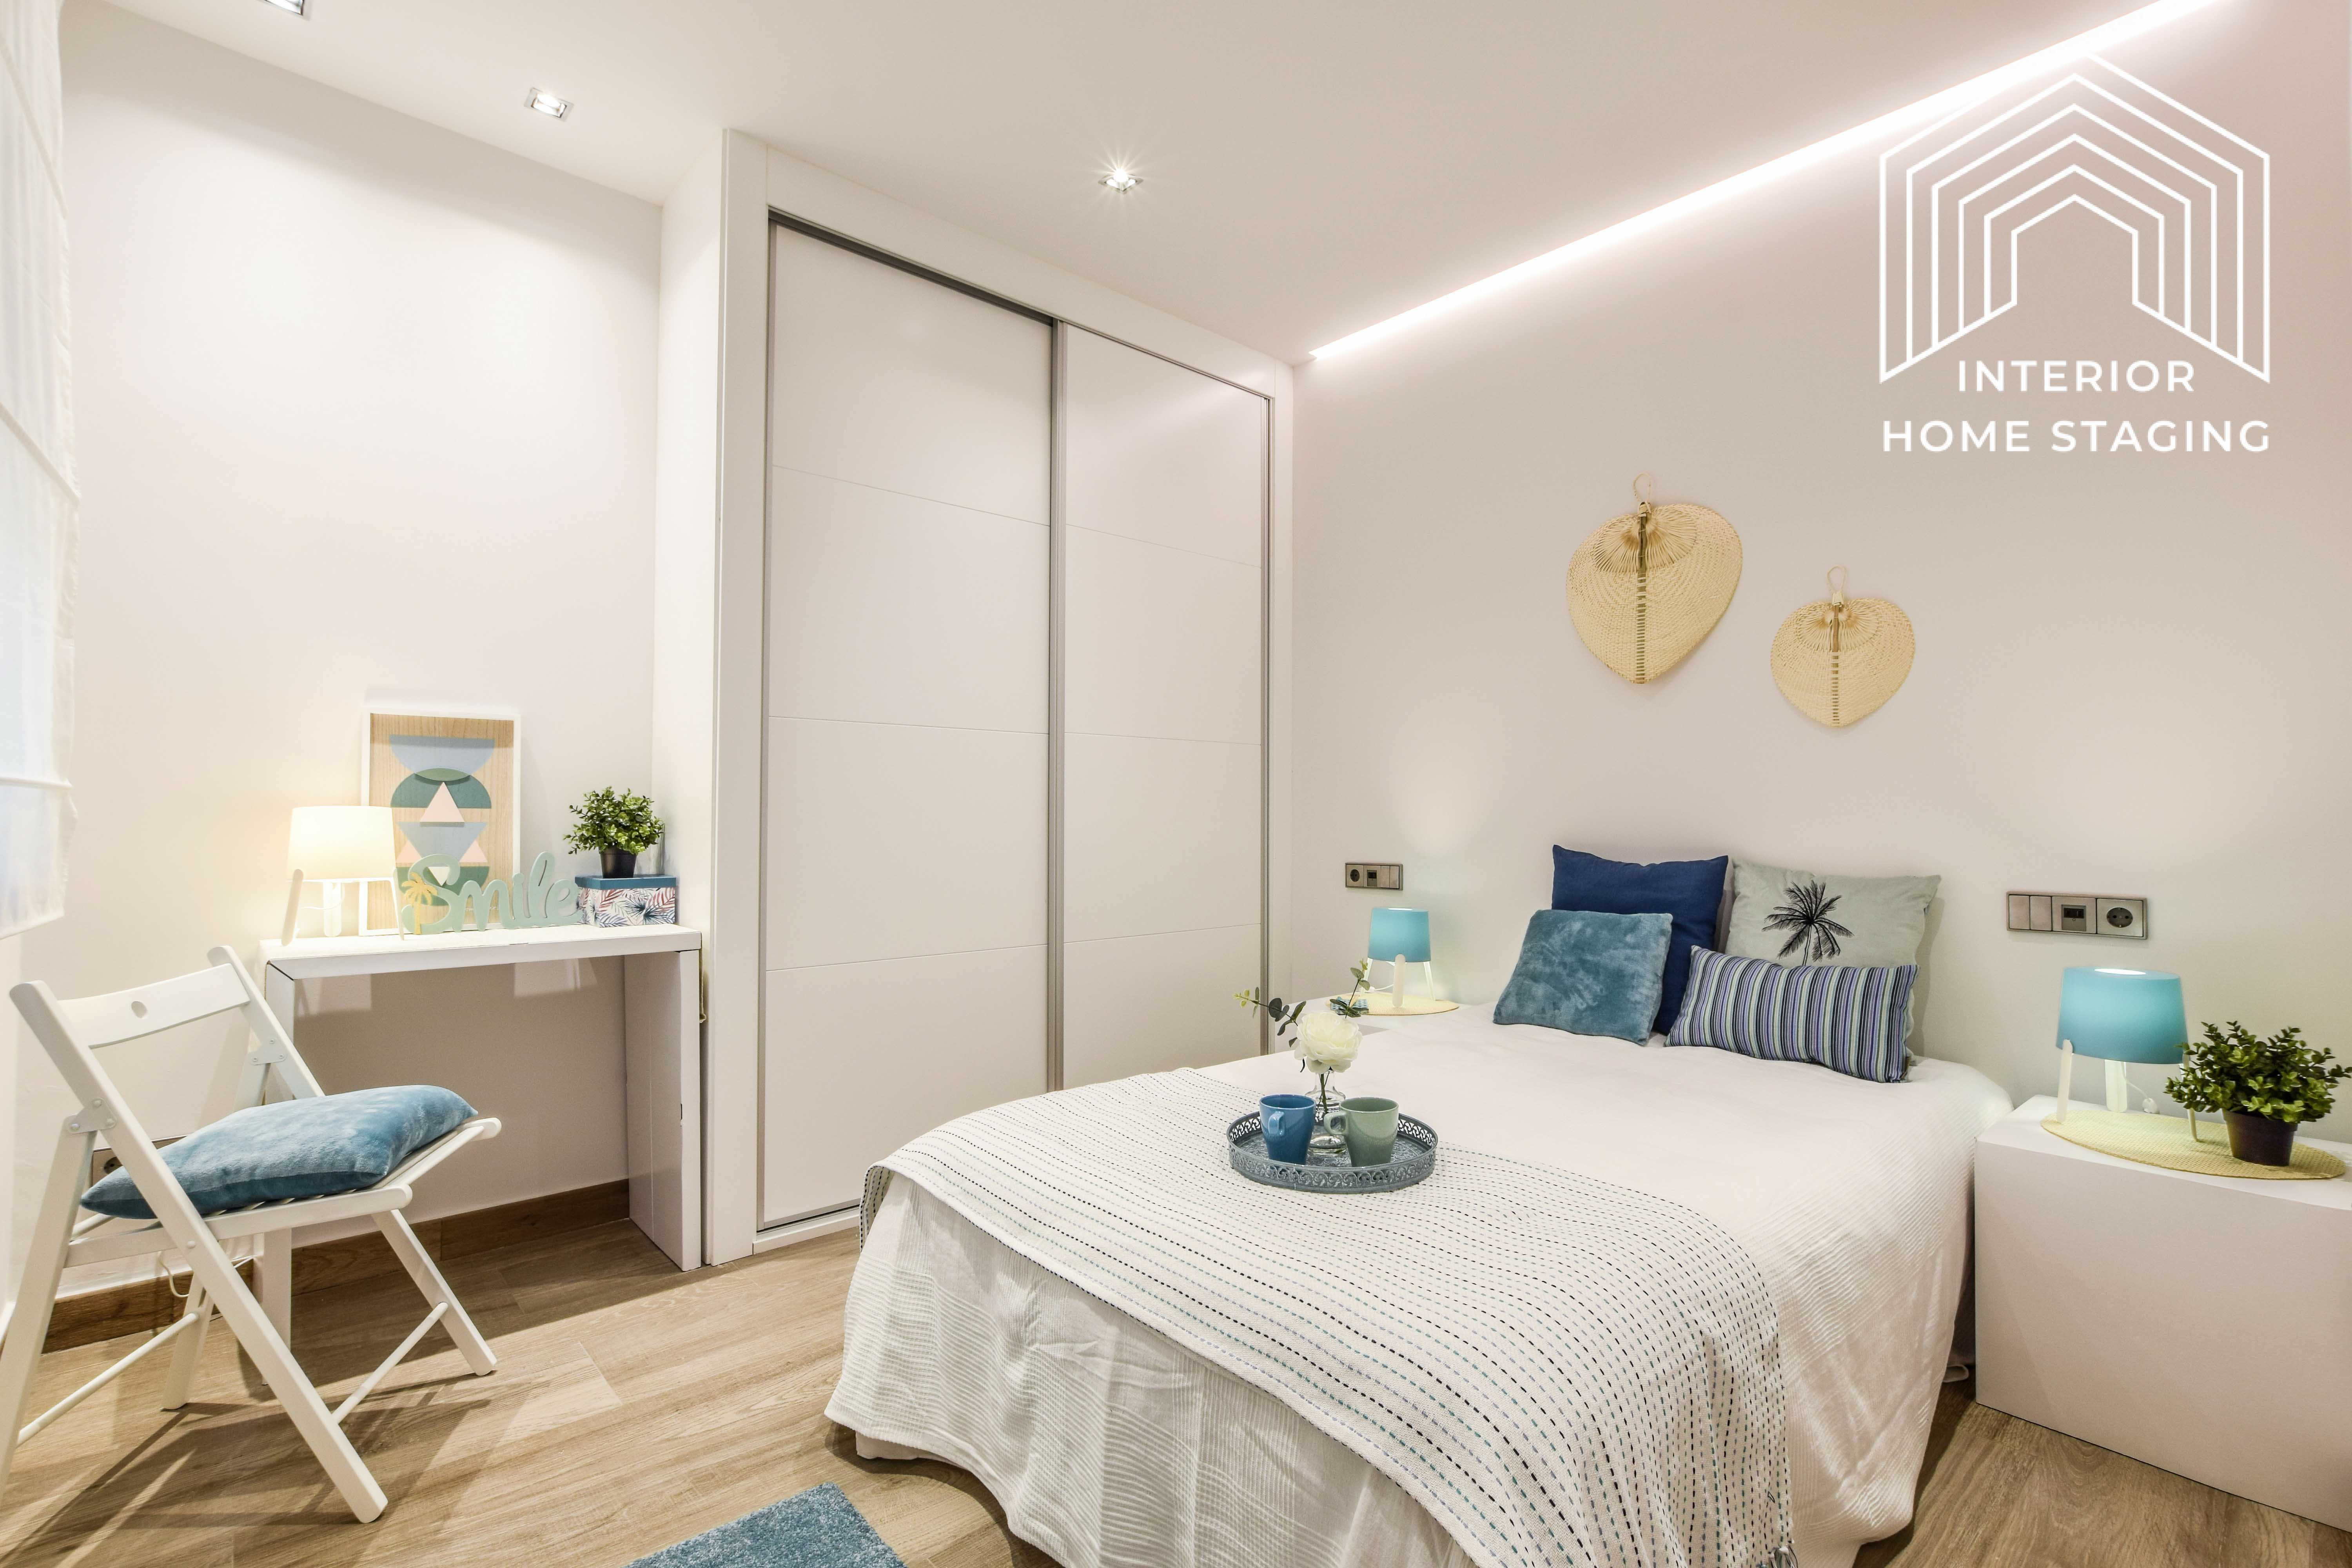 Interior Home Staging dormitorio doble 5